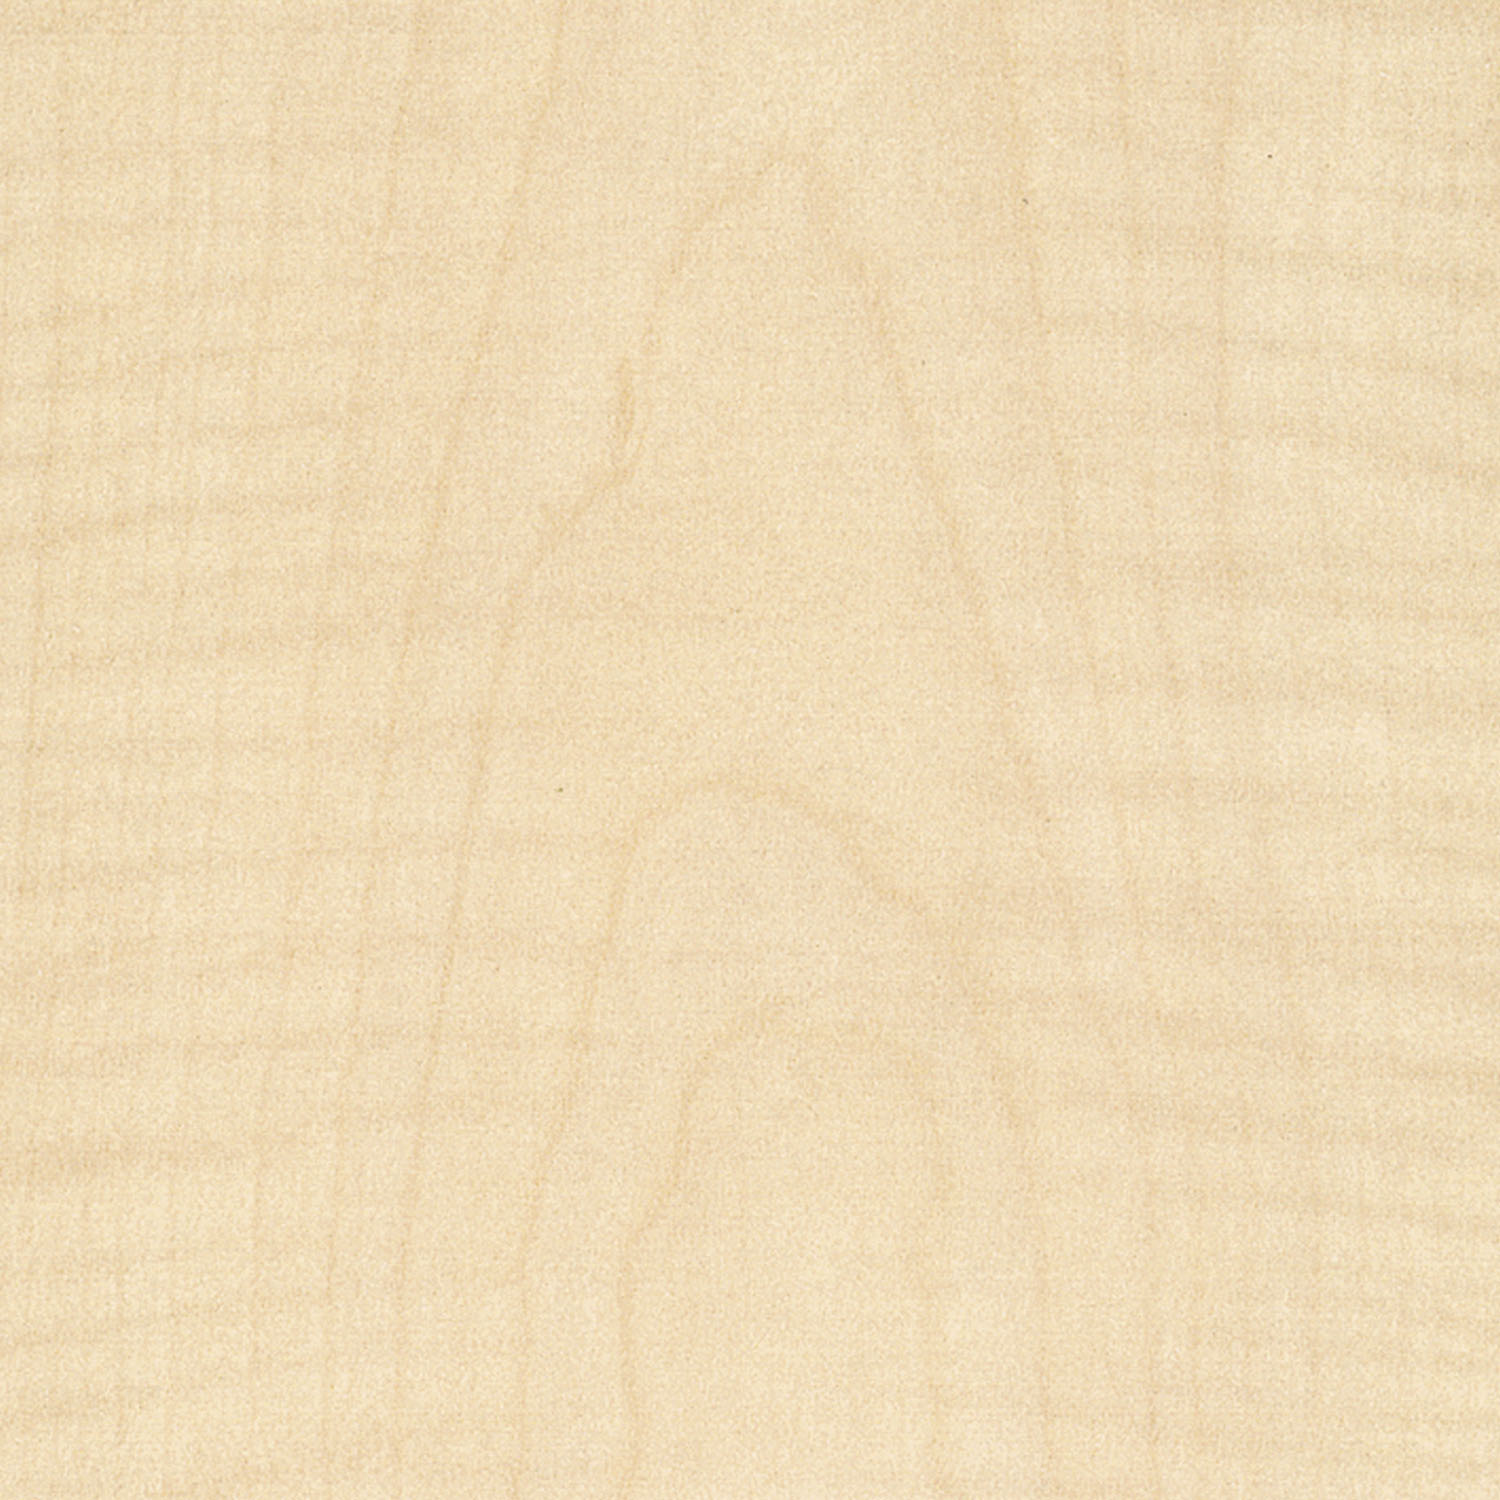 F1143 FrenchSycamore Matte58 Swatch